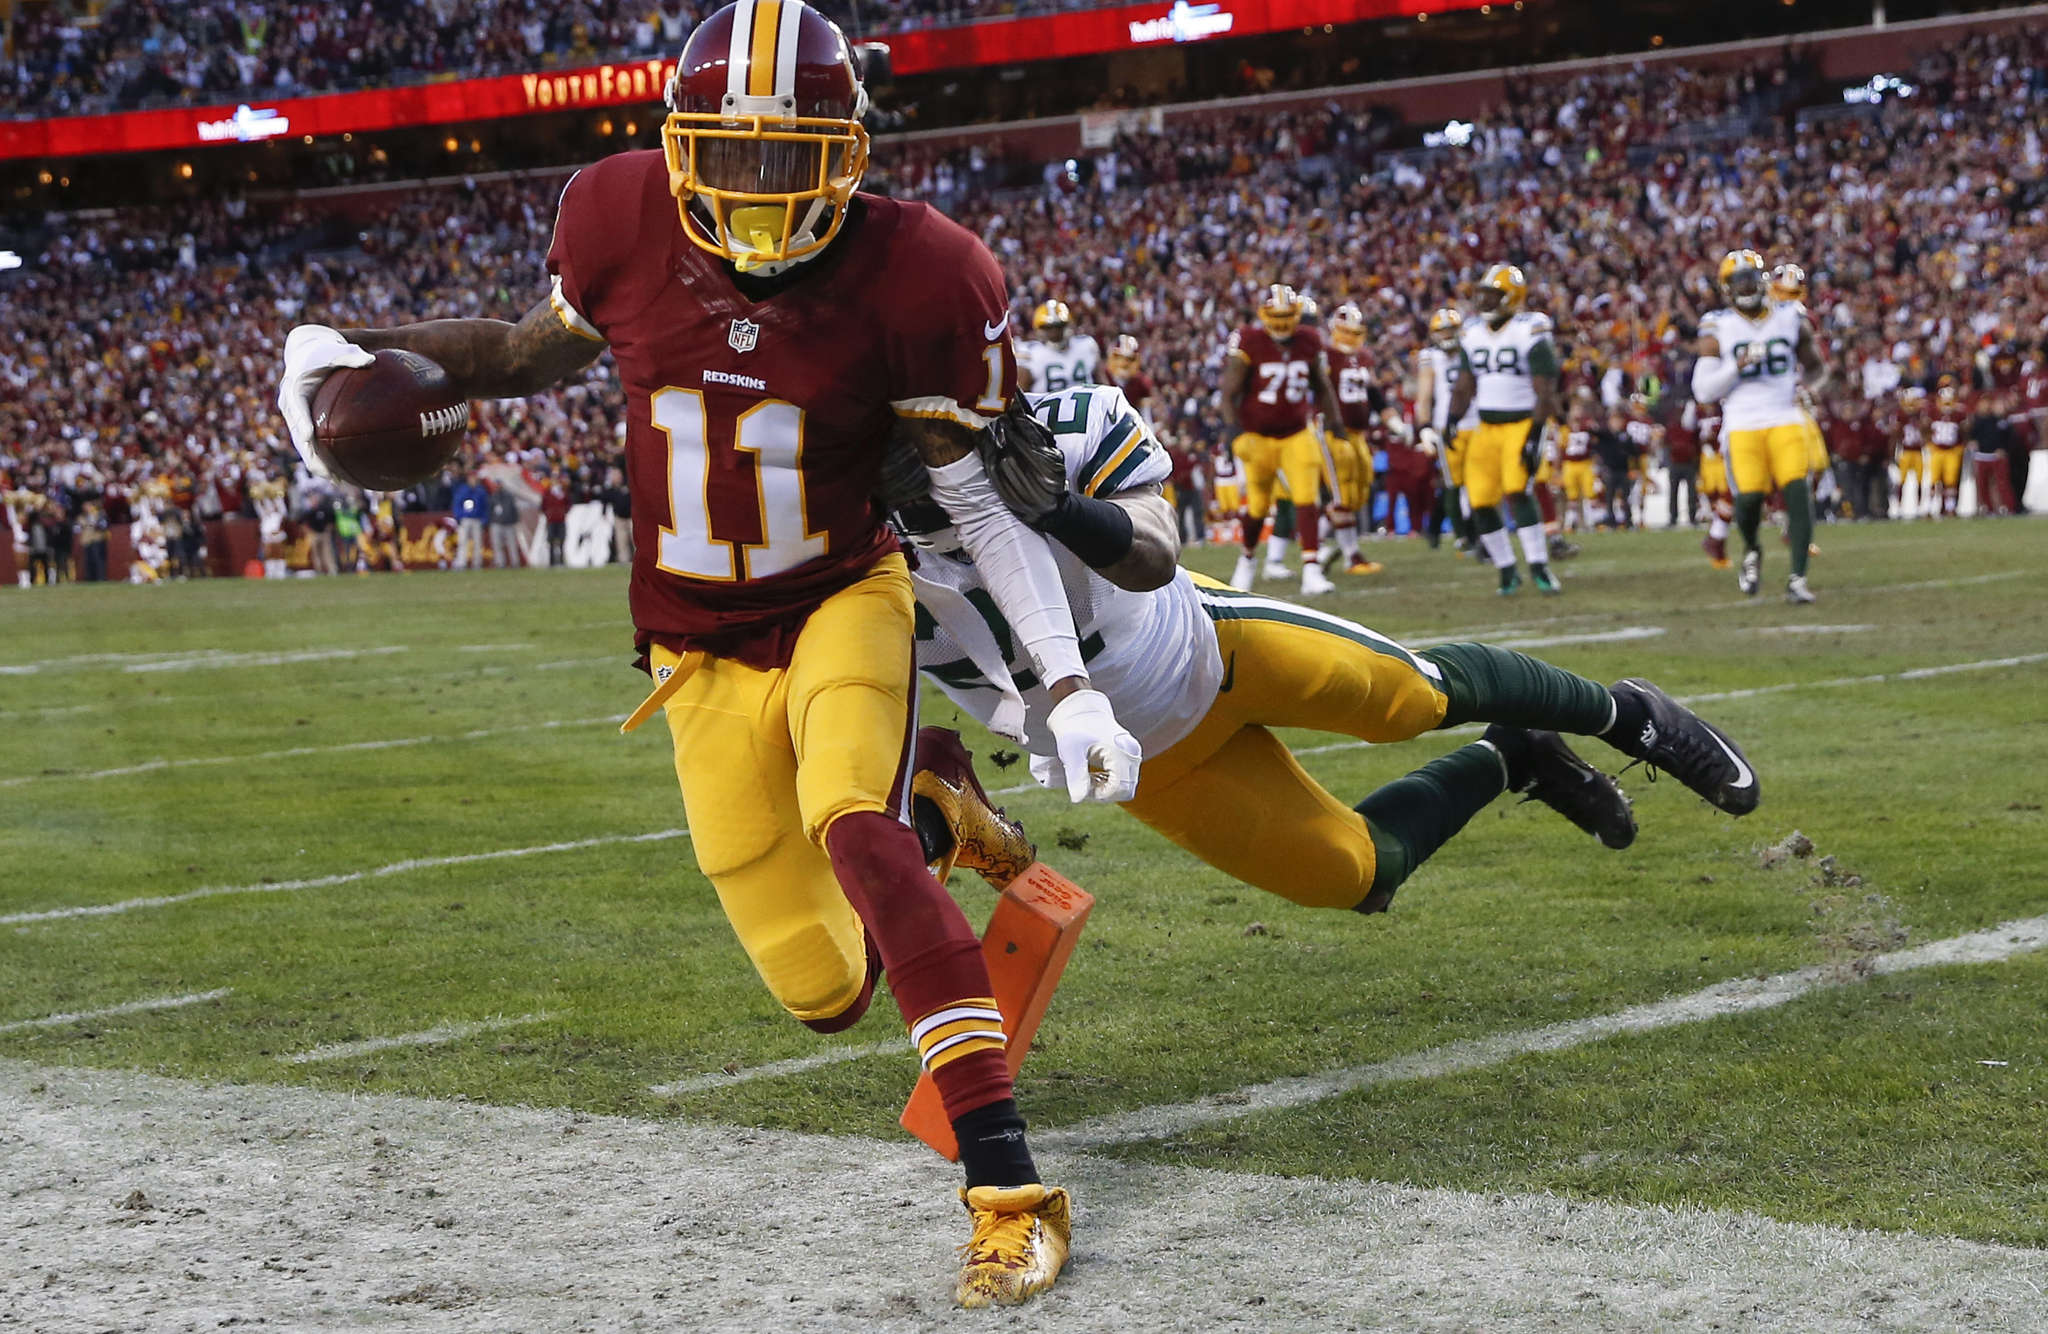 DeSean Jackson was denied TD when it was ruled ball did not cross plane of end zone. ASSOCIATED PRESS